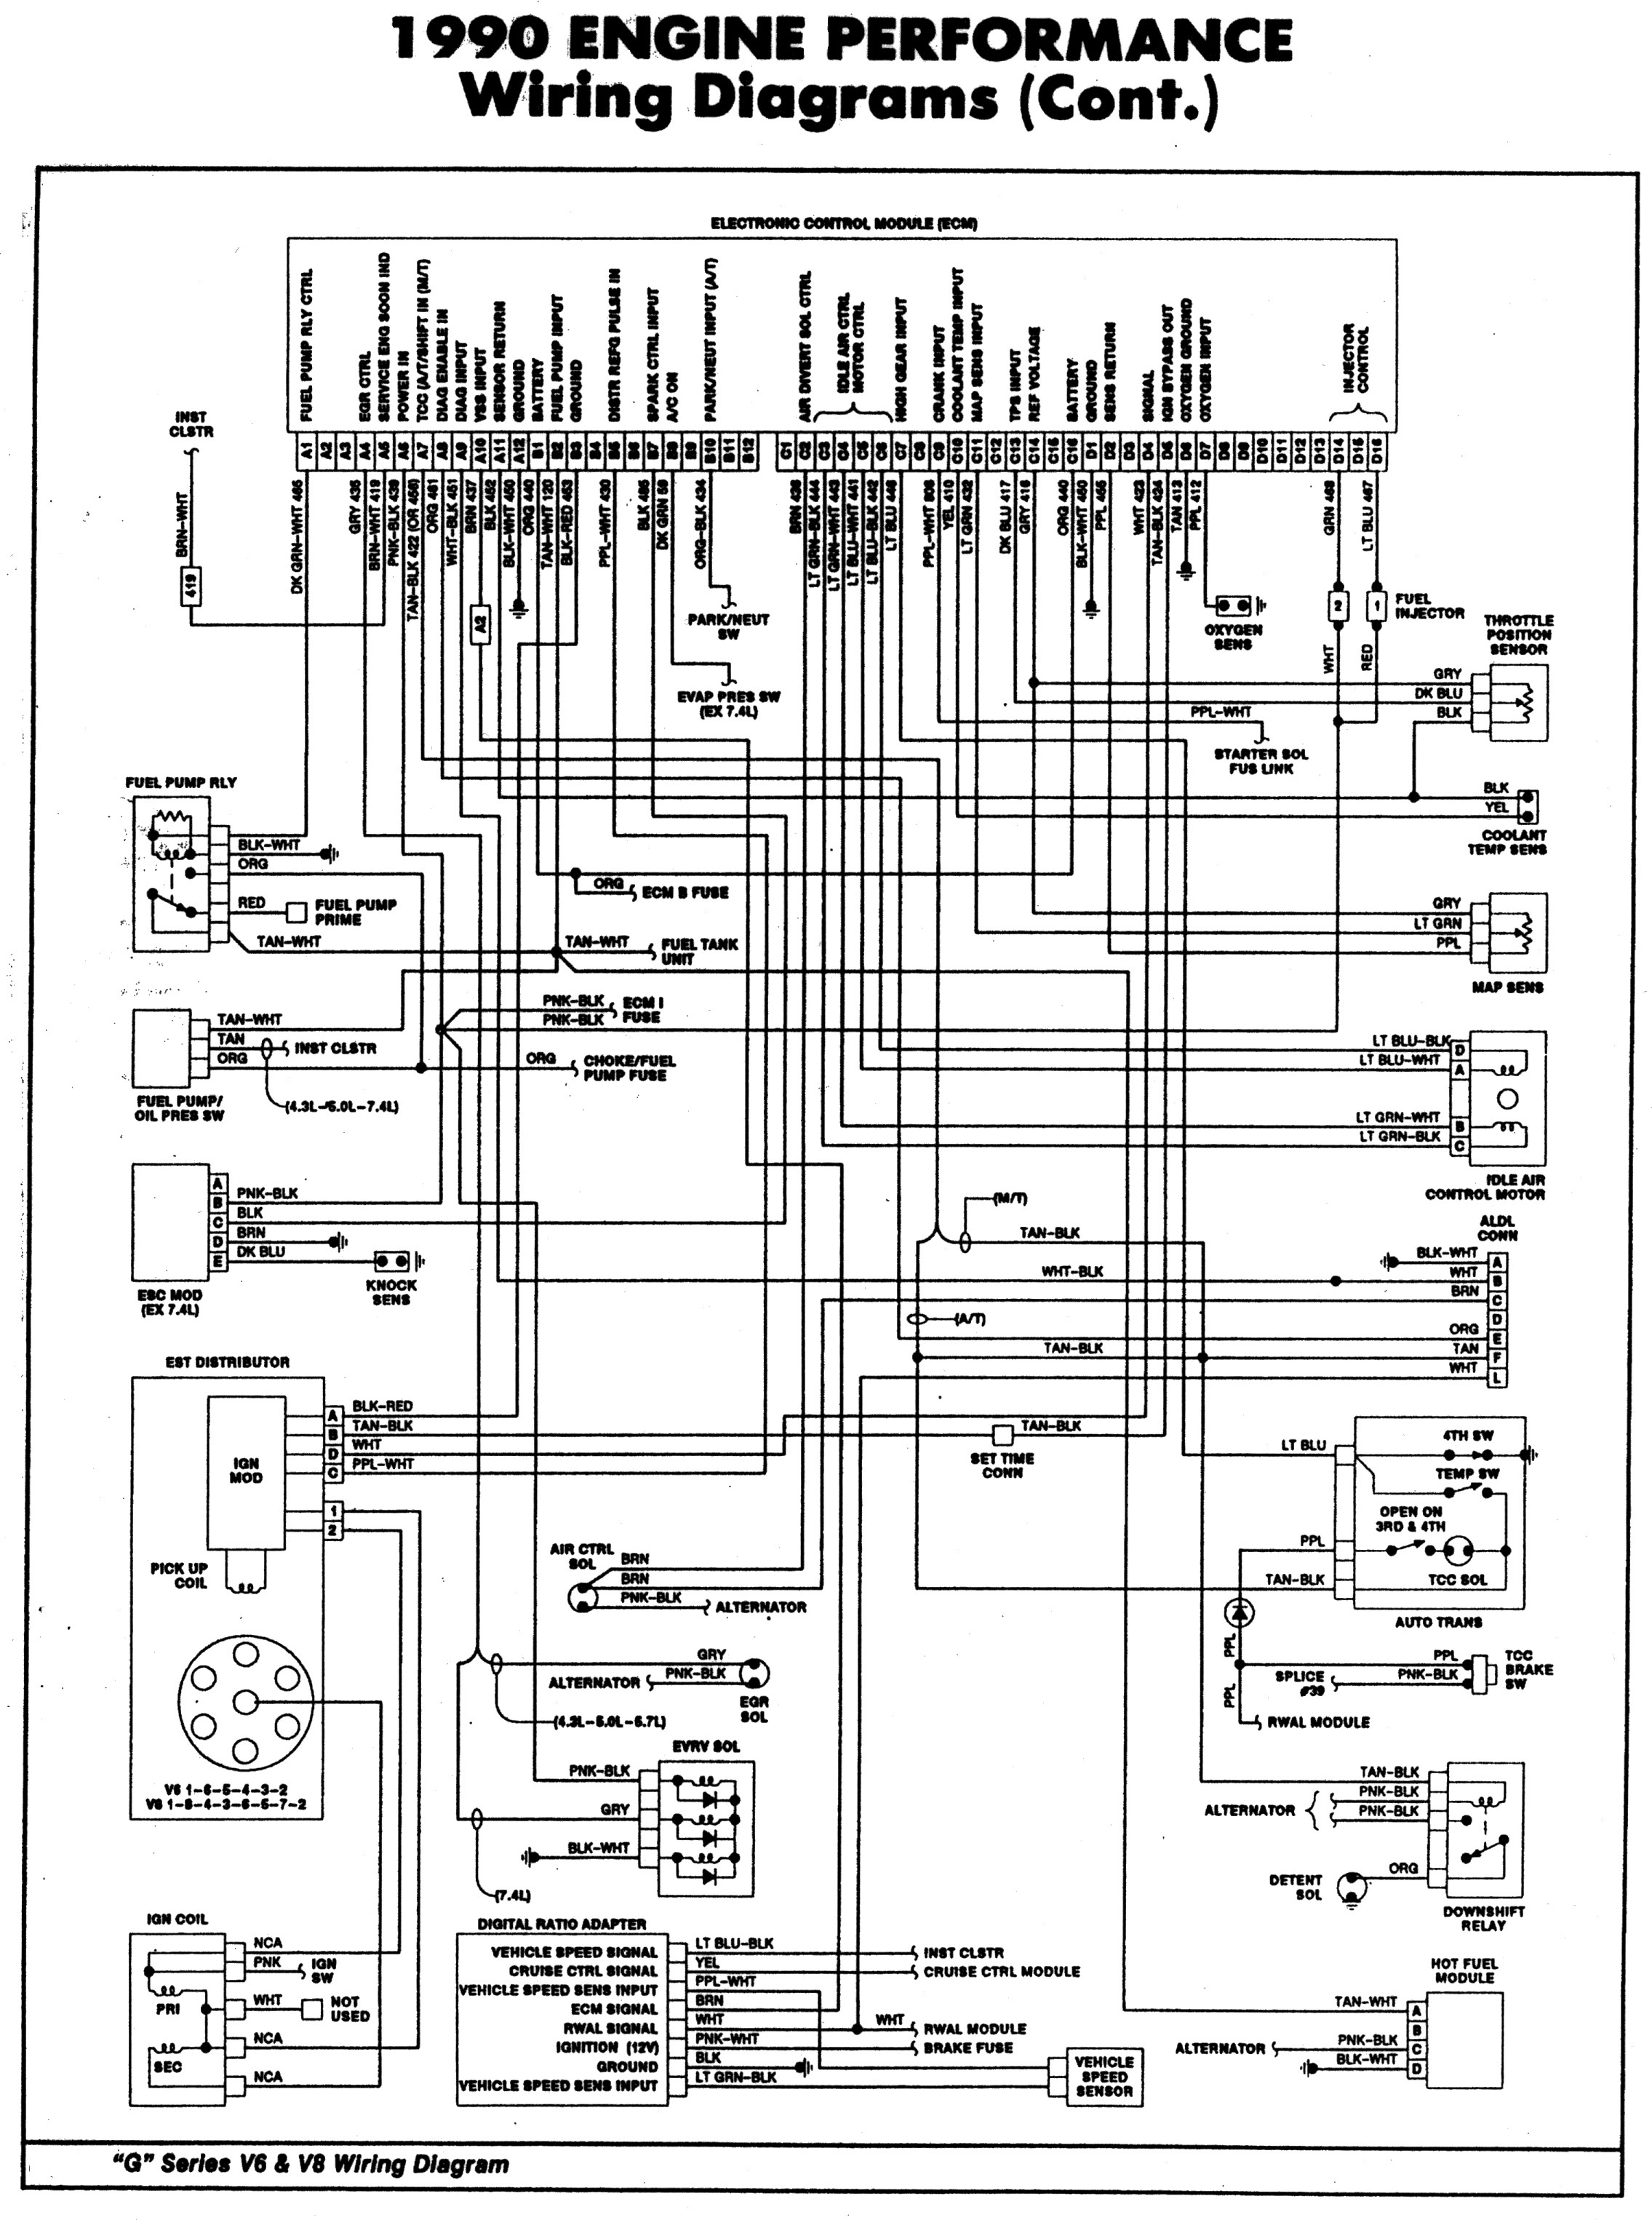 medium resolution of 1994 chevy truck engine diagram wiring diagram query 1994 chevy truck wiring diagram image details wiring